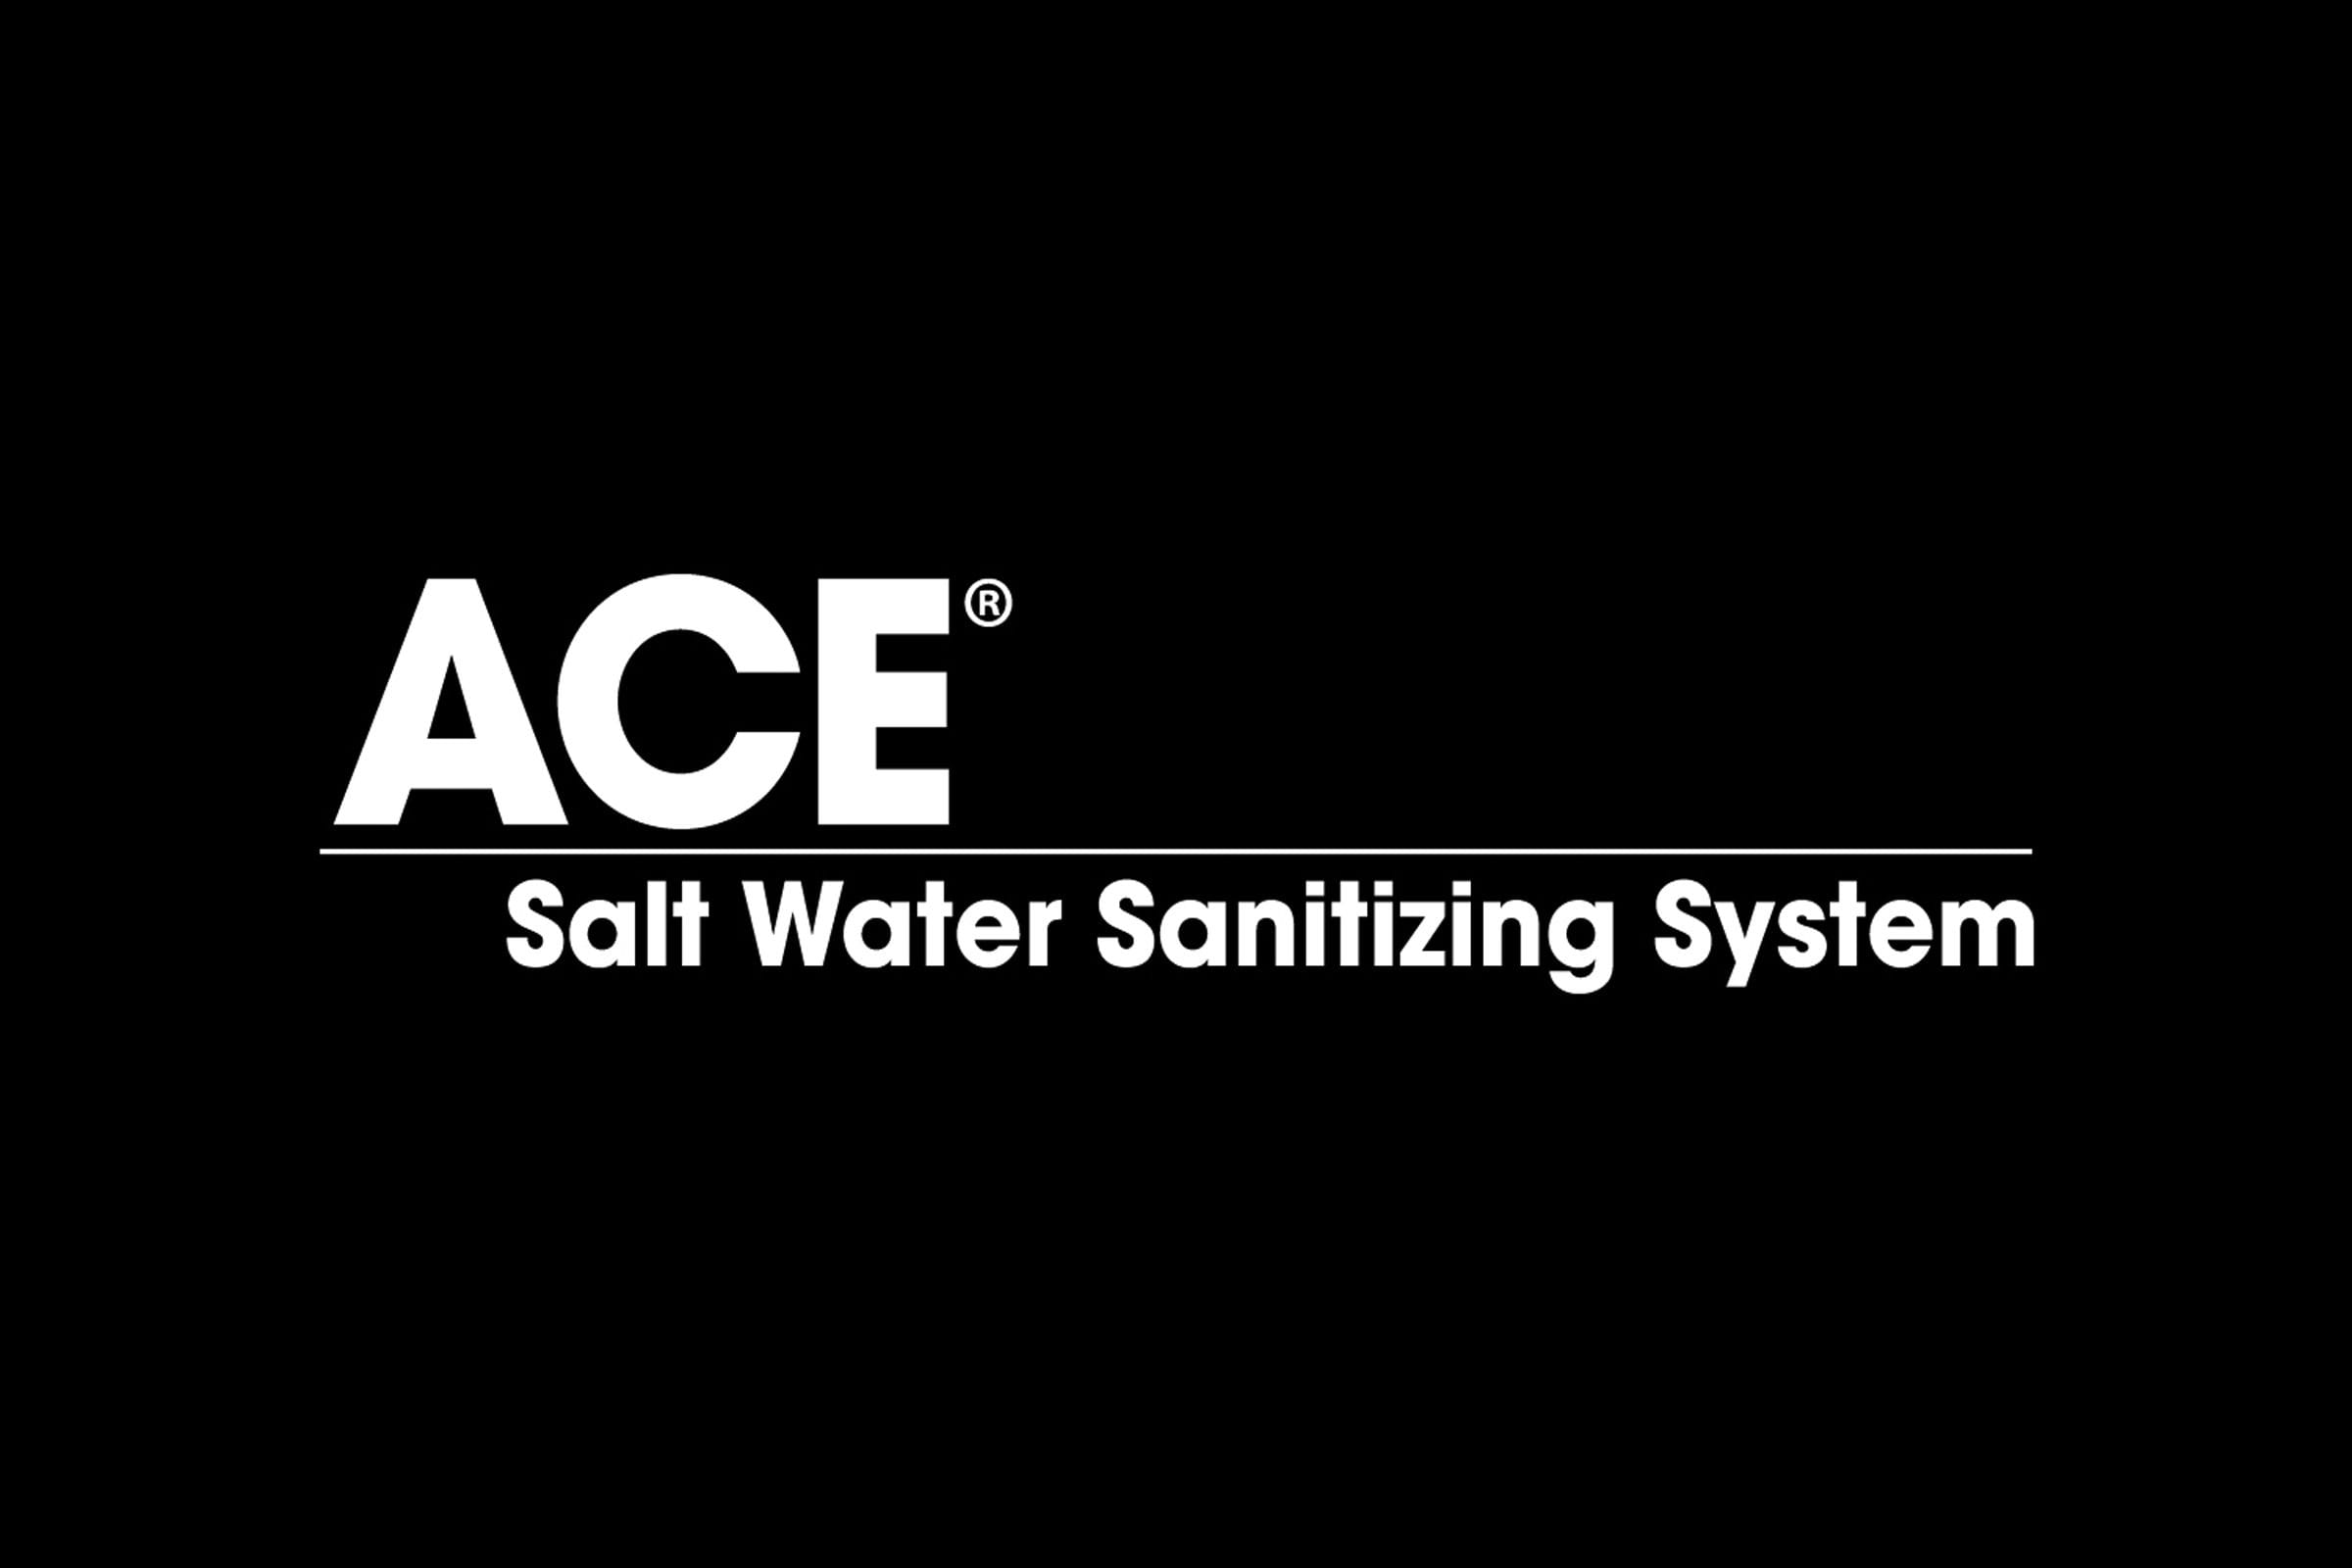 ACE Salt Water Sanitizing System